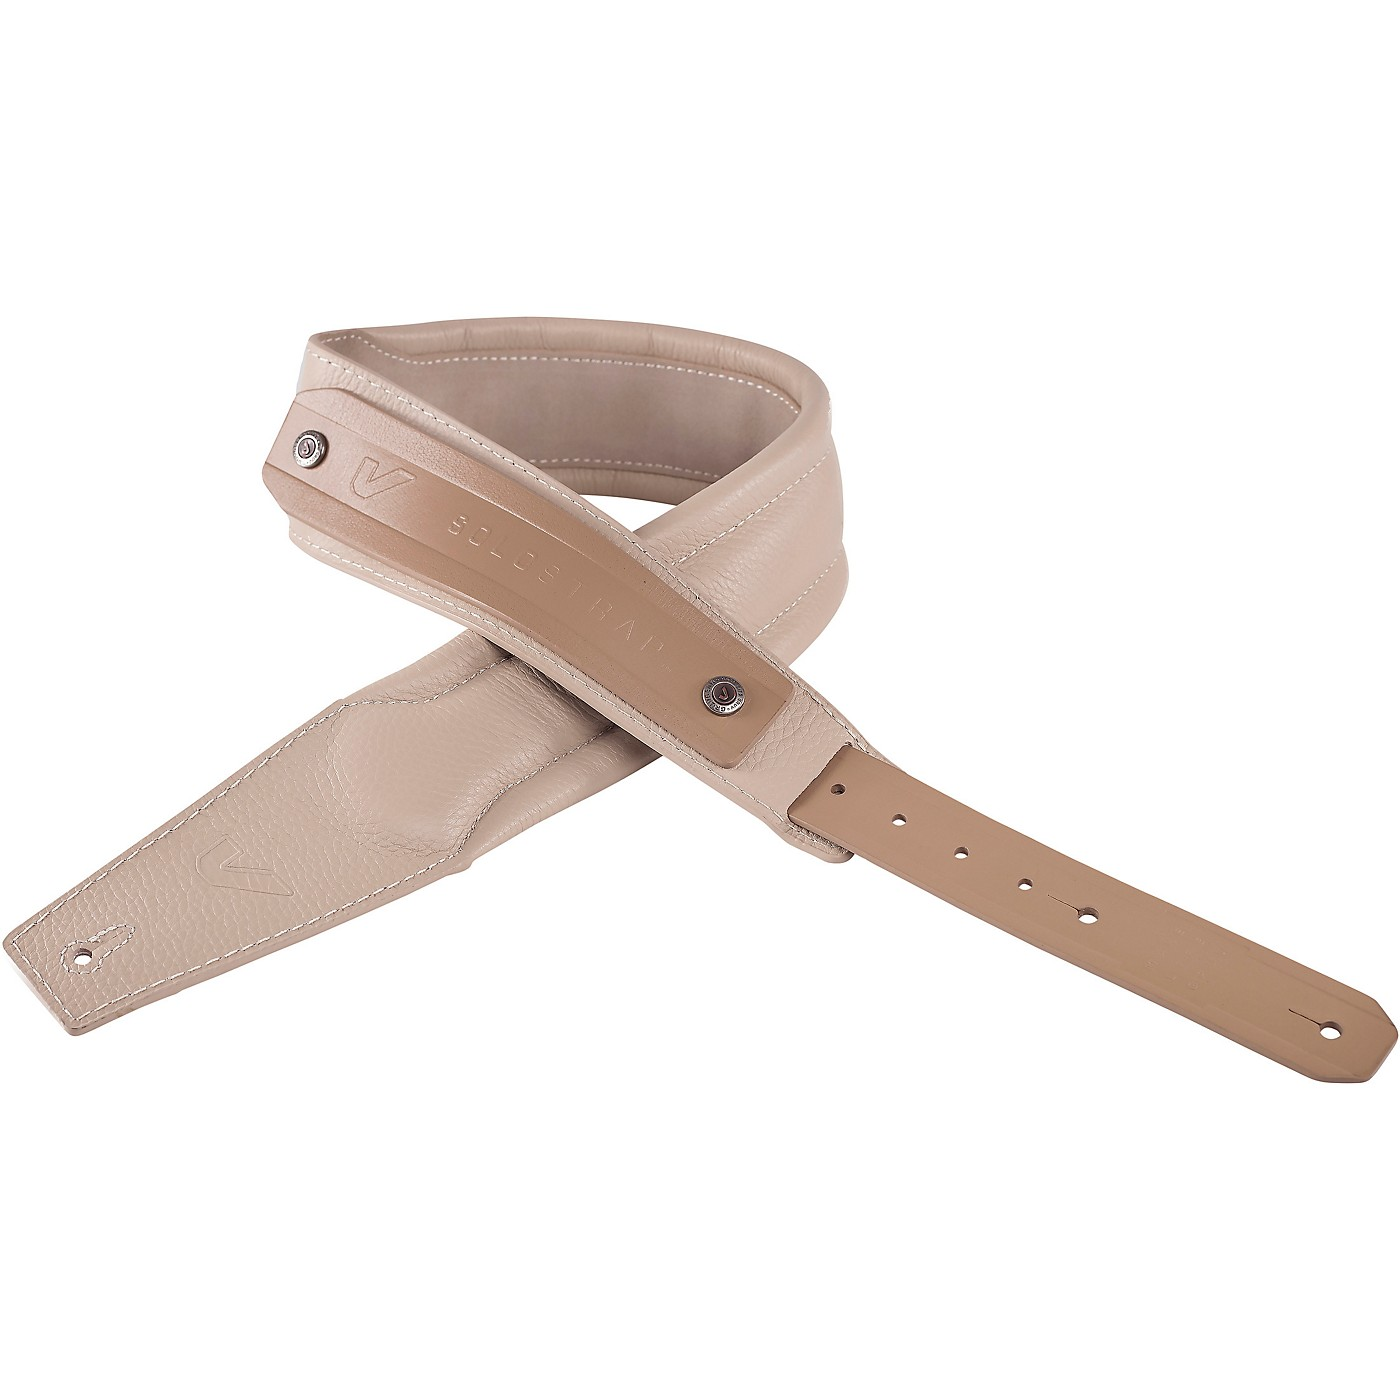 Gruv Gear SoloStrap Premium Leather Guitar/Bass Strap thumbnail